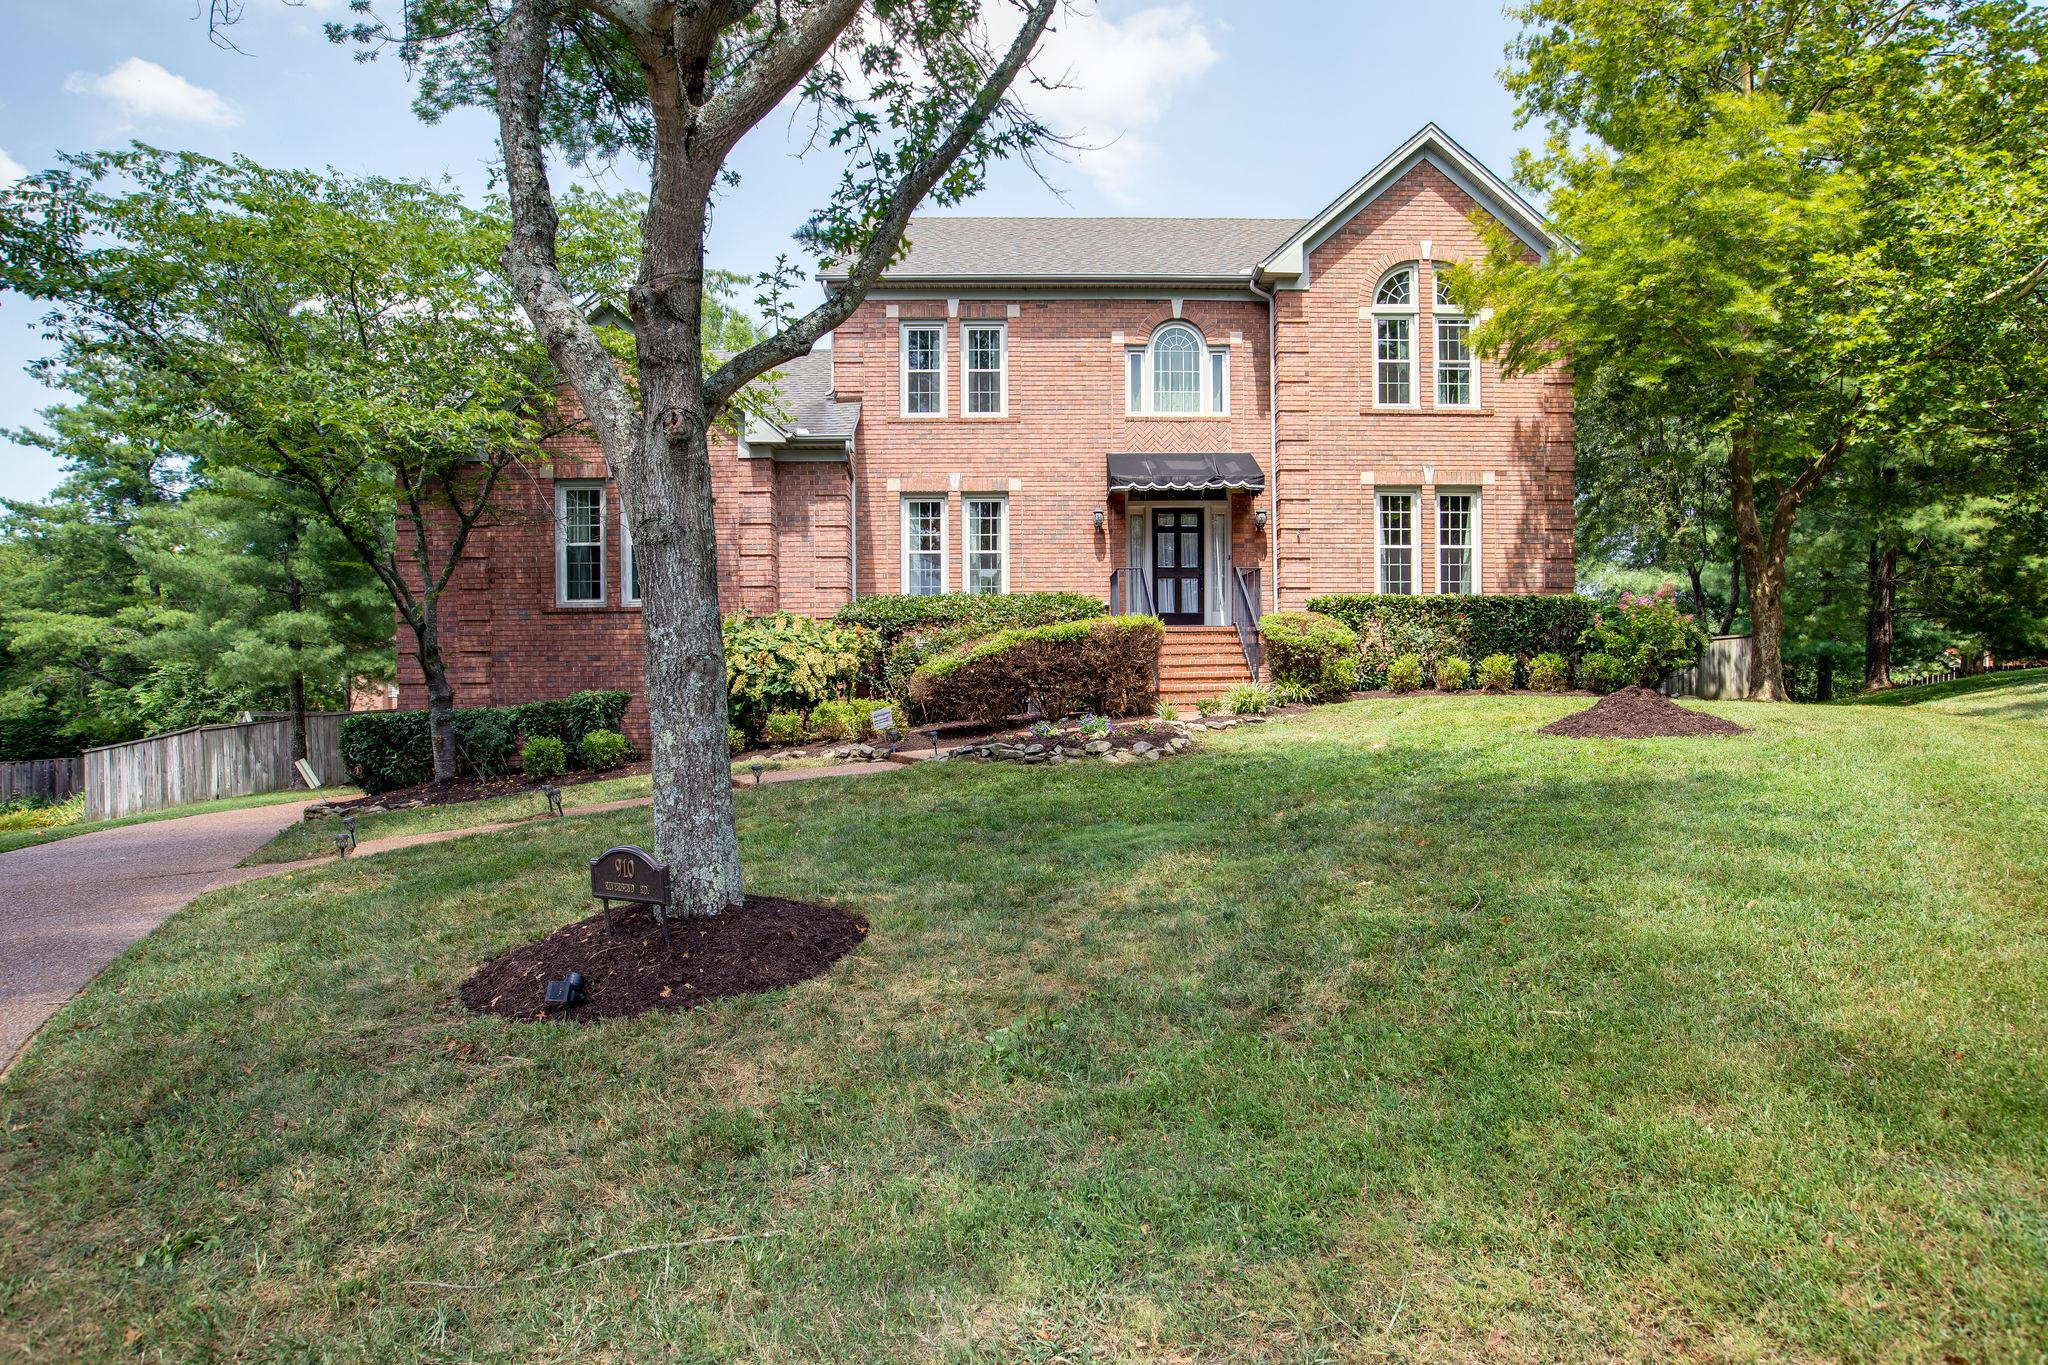 910 Riverbend Road, Bellevue in Williamson County County, TN 37221 Home for Sale